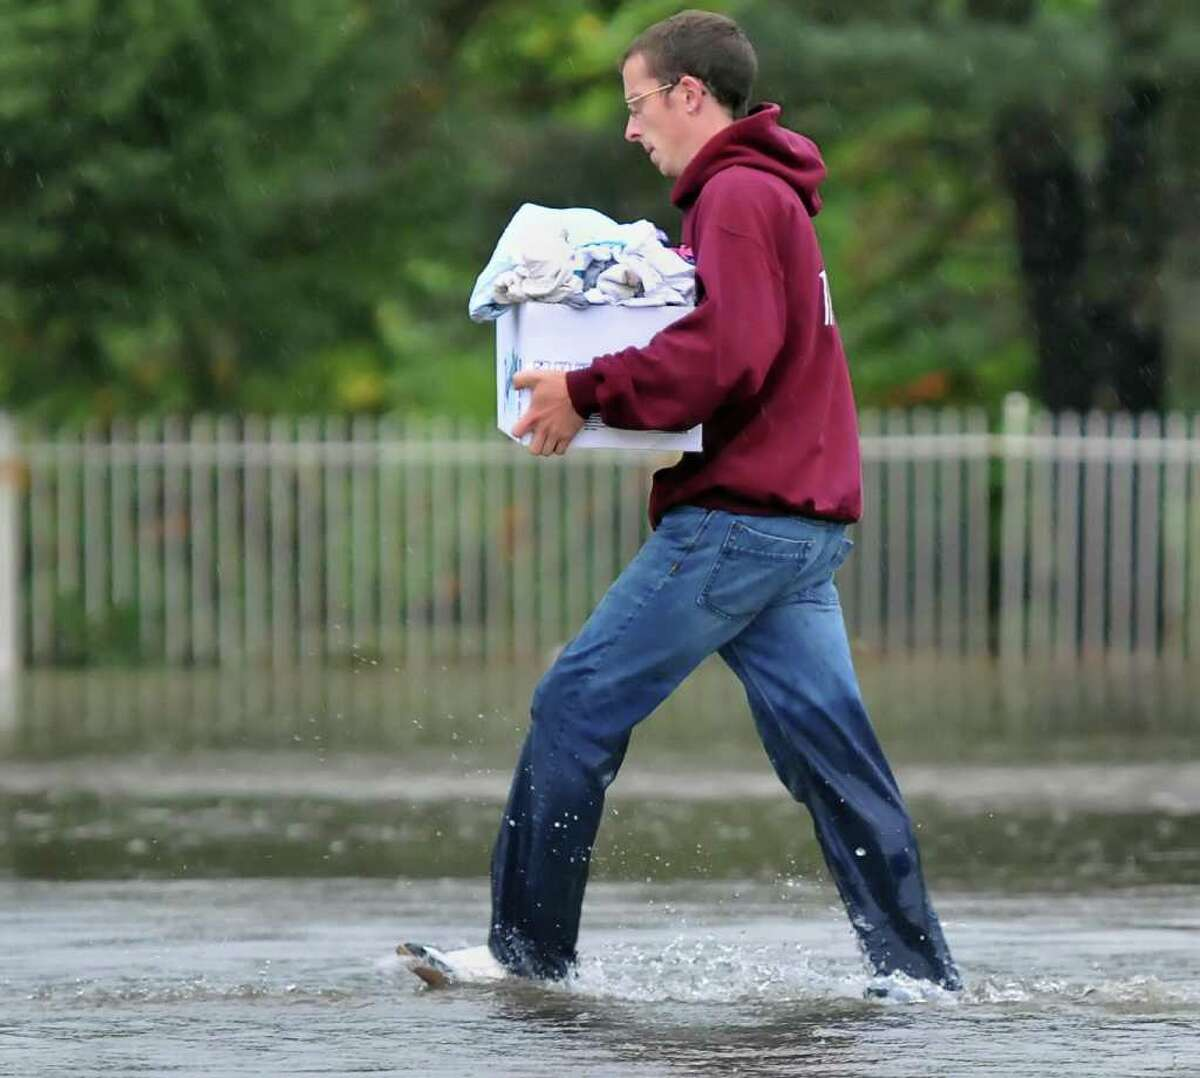 A Sumpter Street resident retrieves belongings from his flooded home in West Albany in 2010. (John Carl D'Annibale / Times Union)